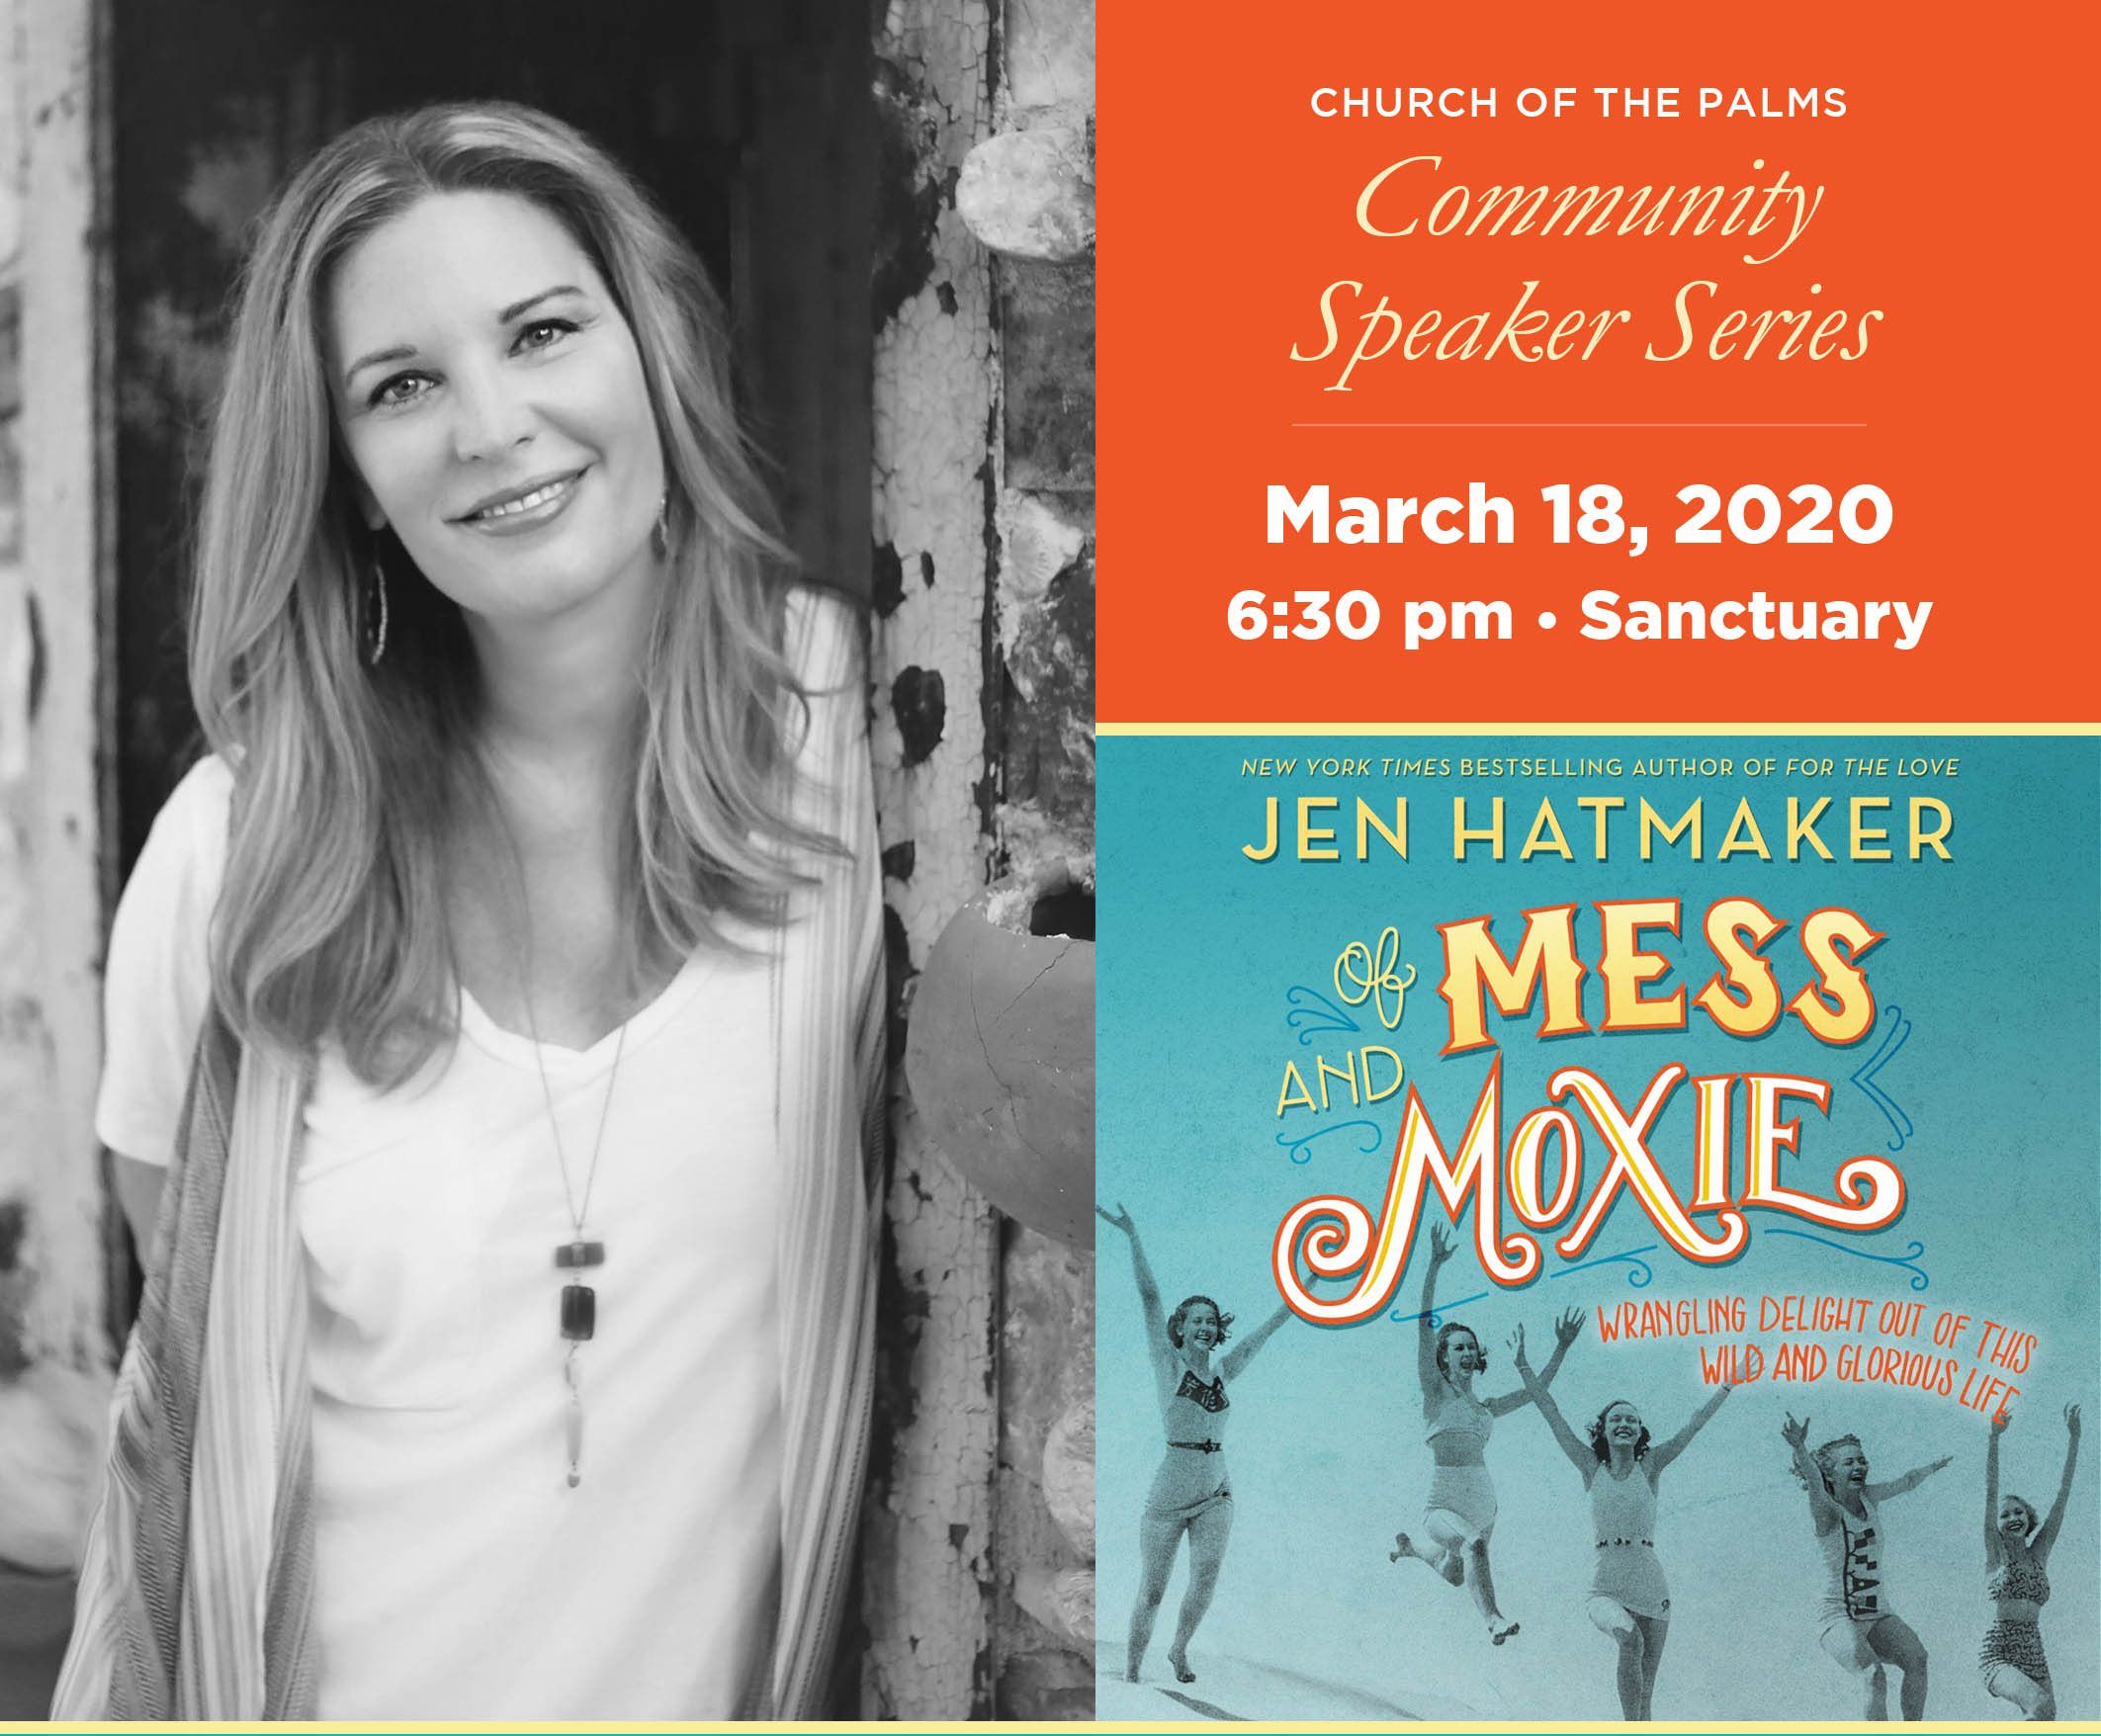 Community Speaker Series: Jen Hatmaker